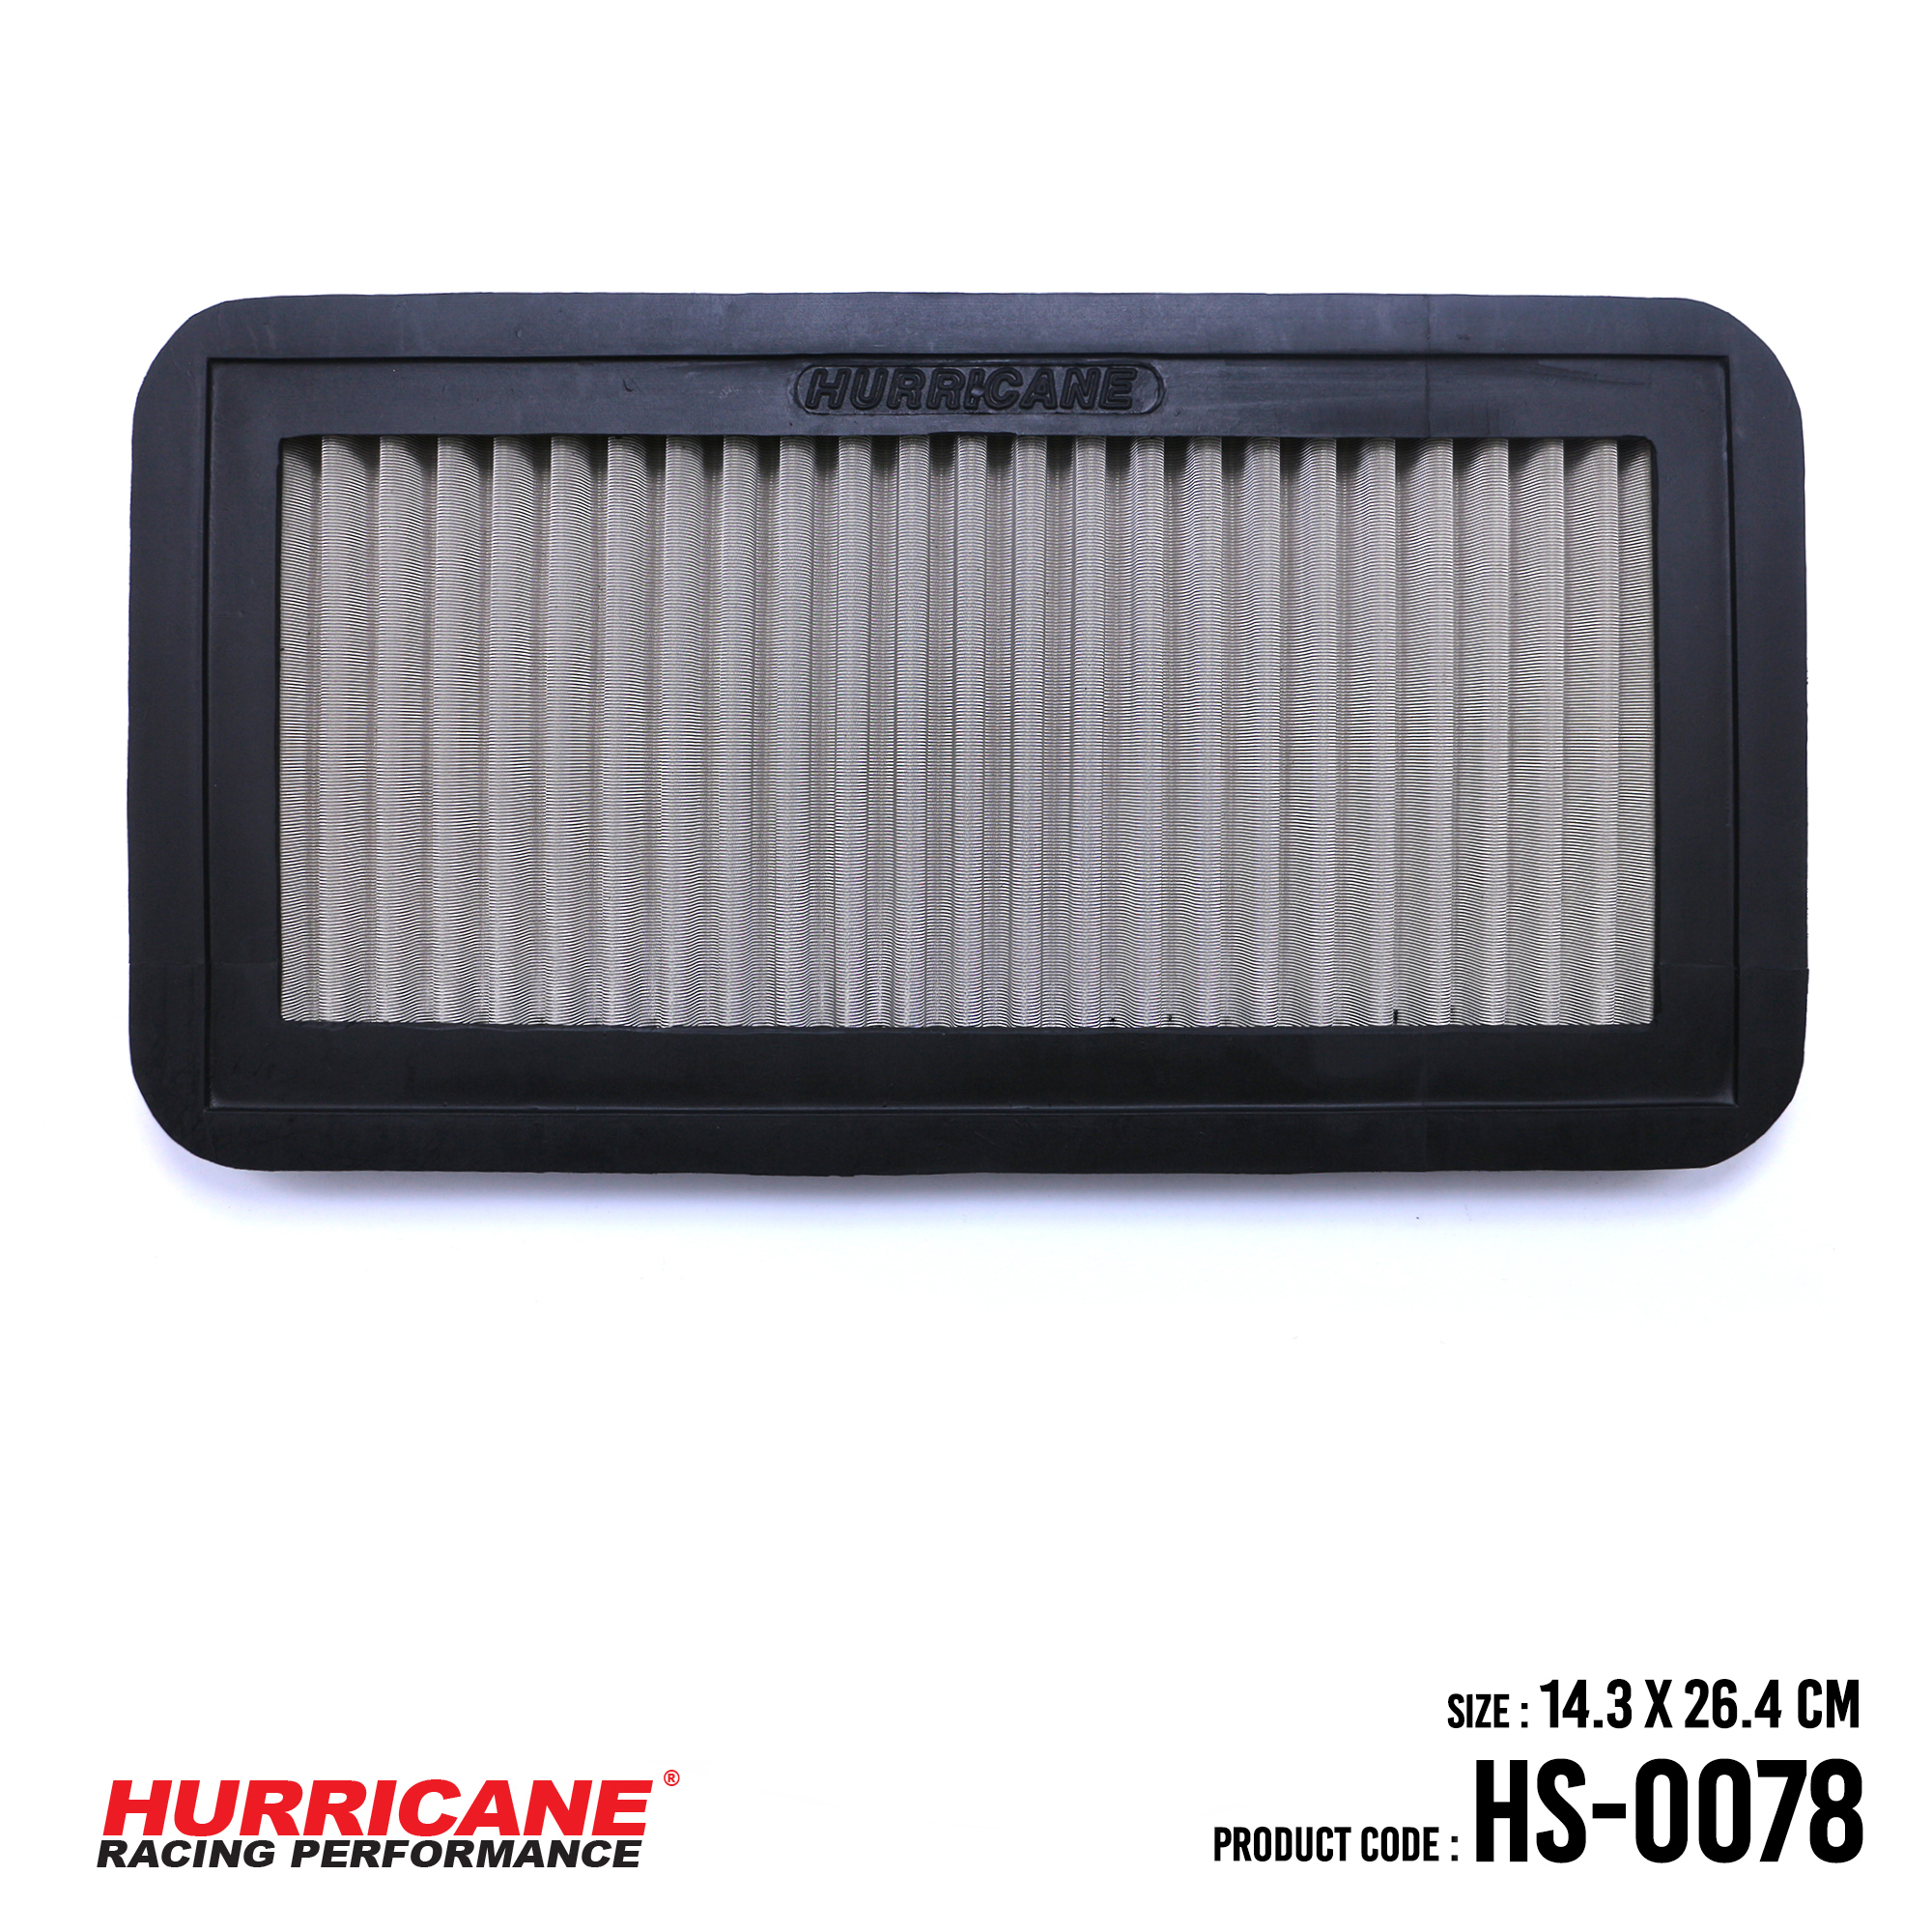 HURRICANE STAINLESS STEEL AIR FILTER FOR HS-0078 Kia